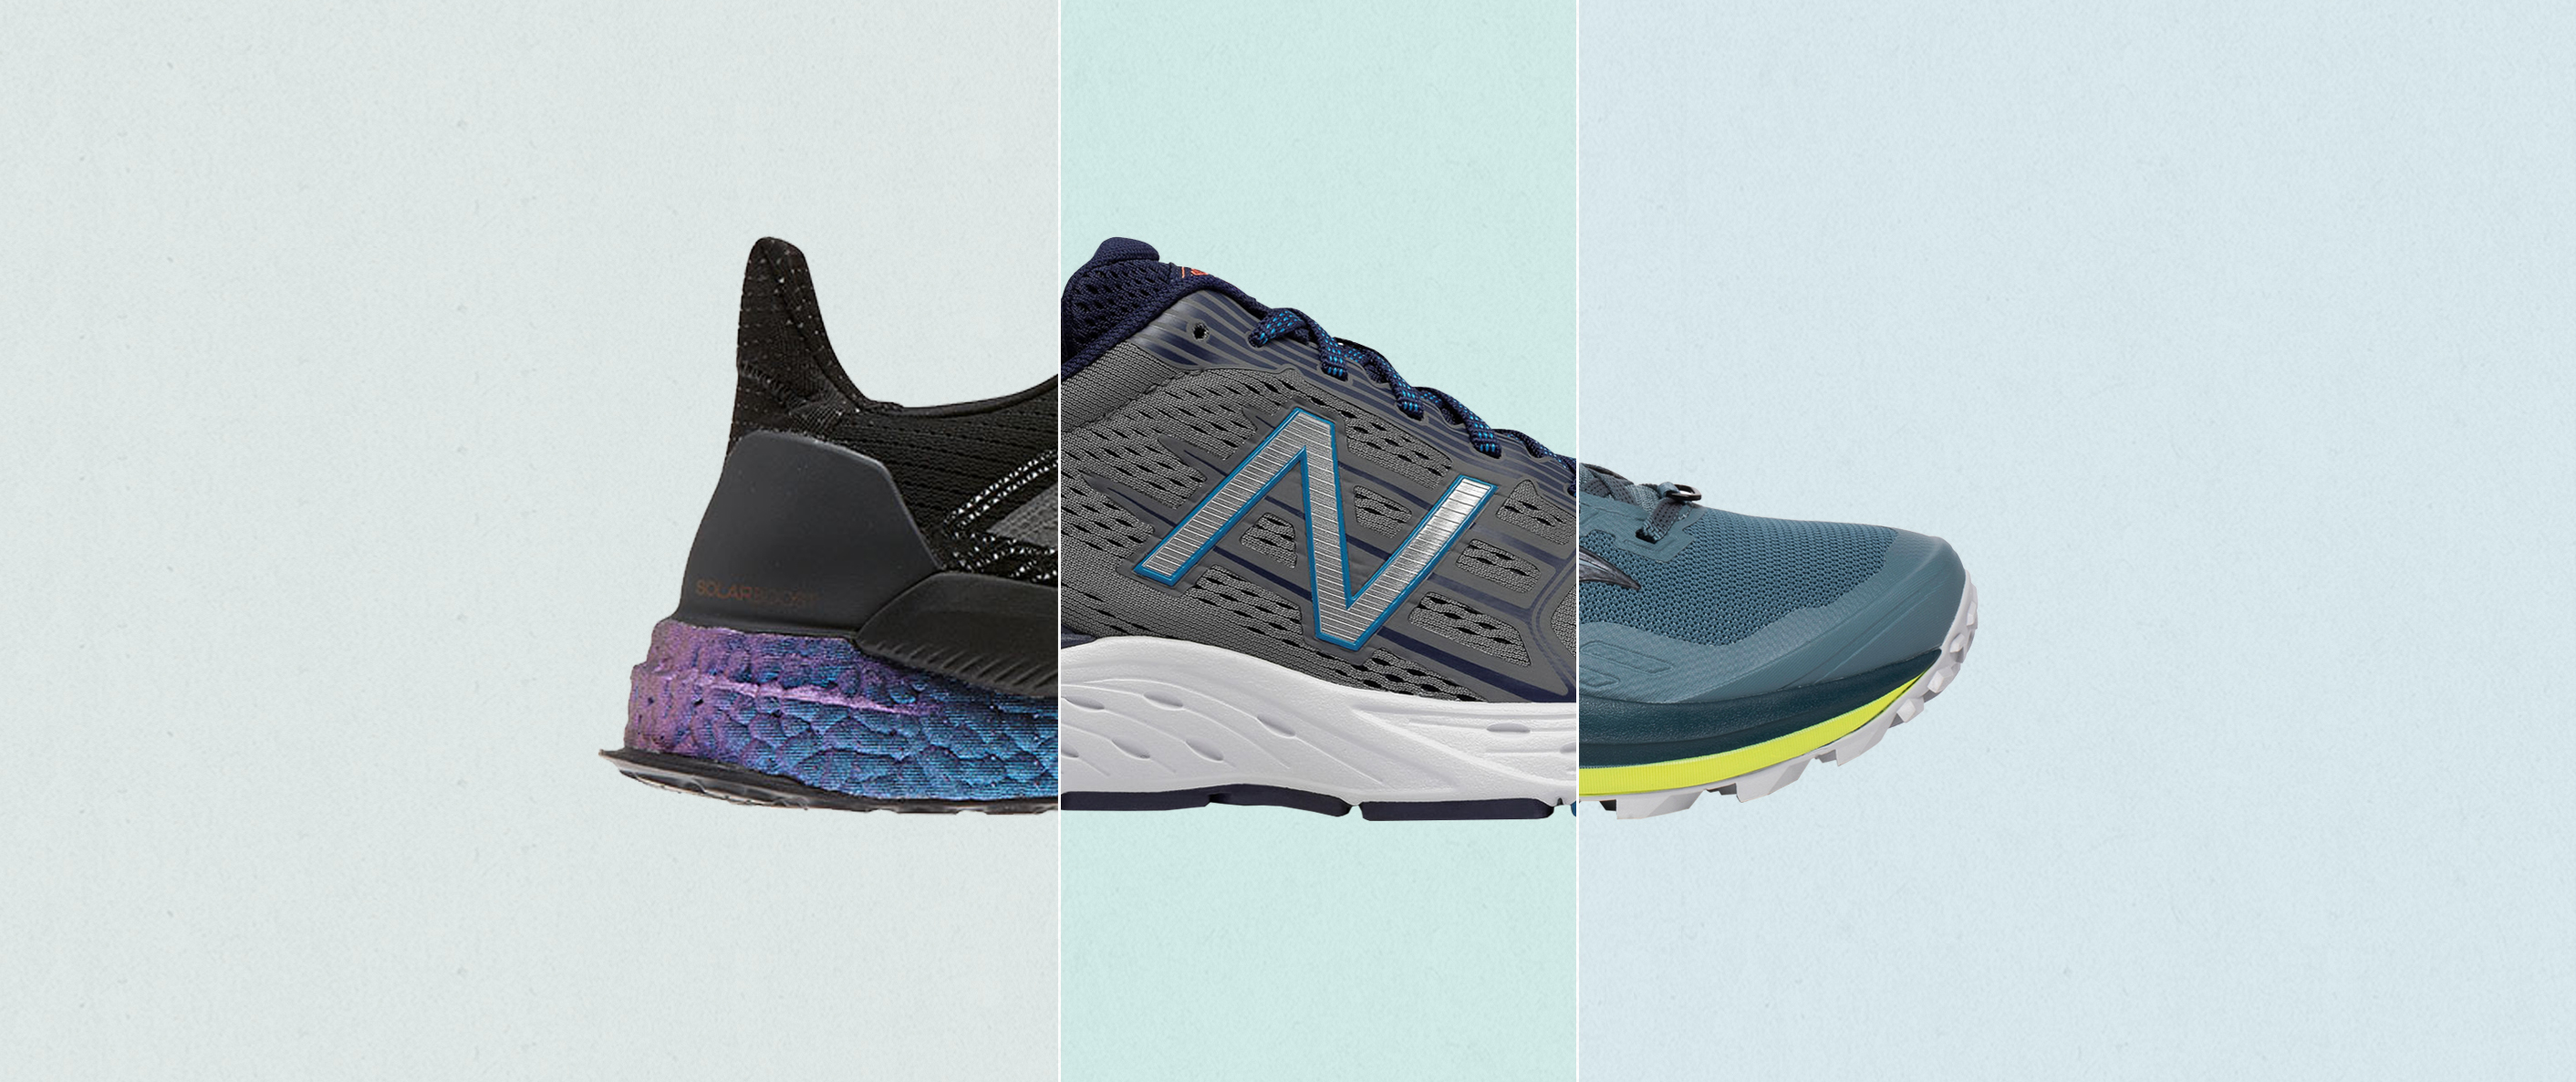 These are the best running shoes to lace up in 2020